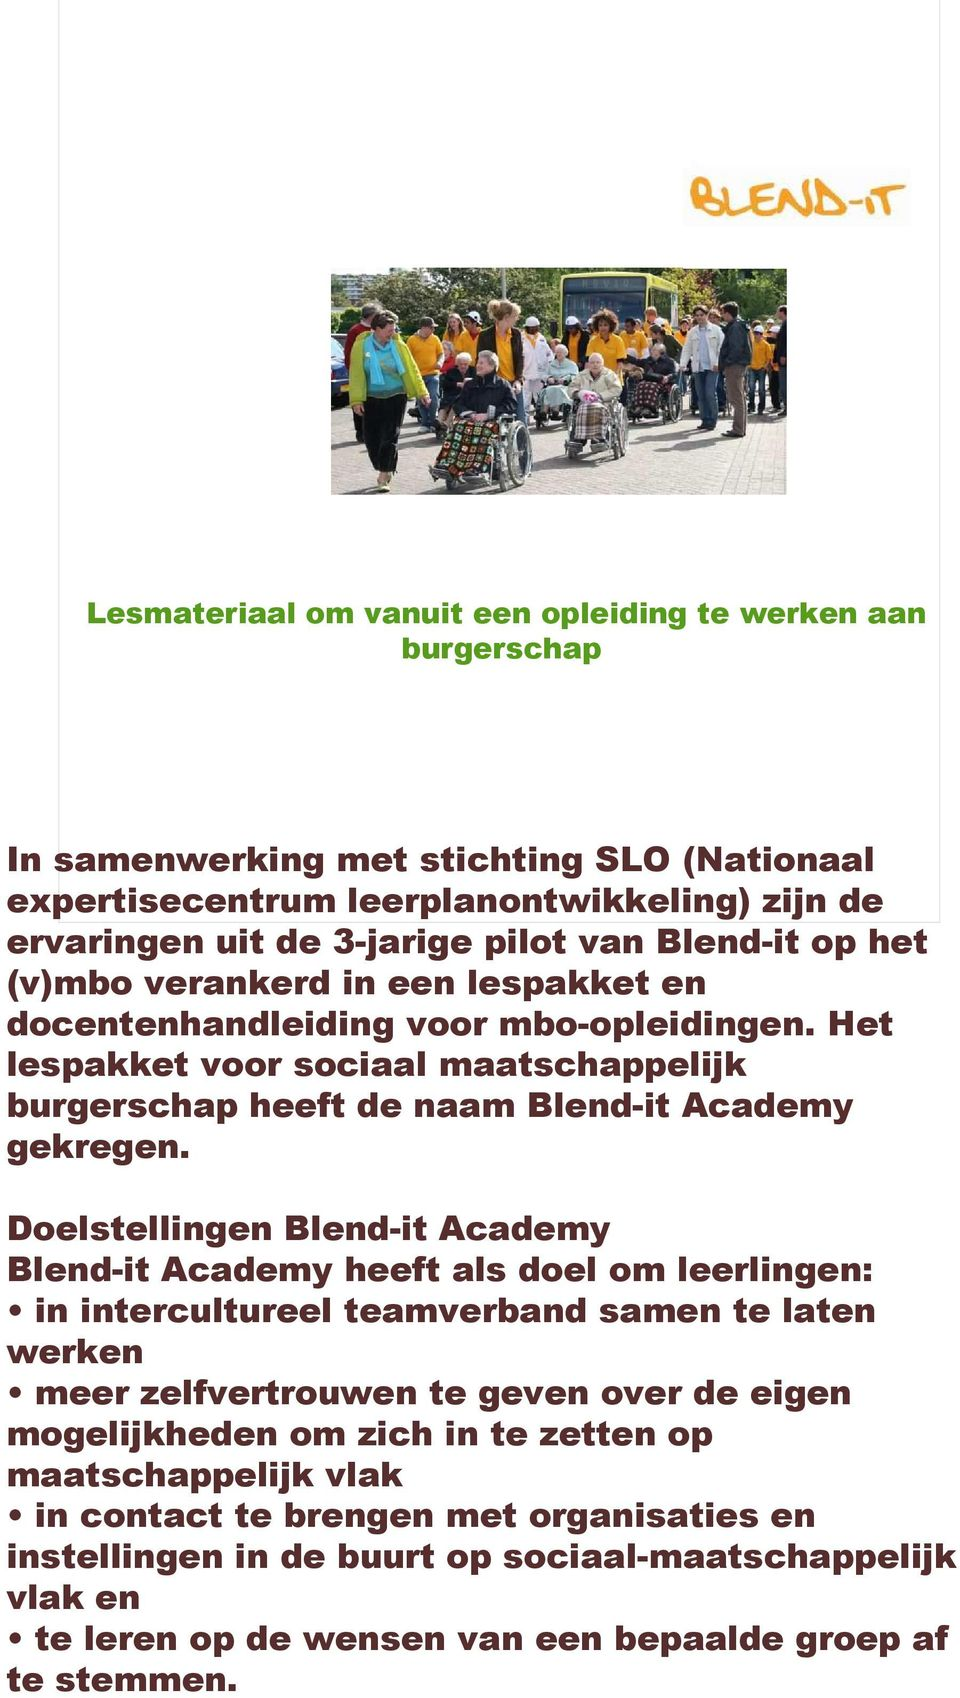 Doelstellingen Blend-it Academy Blend-it Academy heeft als doel om leerlingen: in intercultureel teamverband samen te laten werken meer zelfvertrouwen te geven over de eigen mogelijkheden om